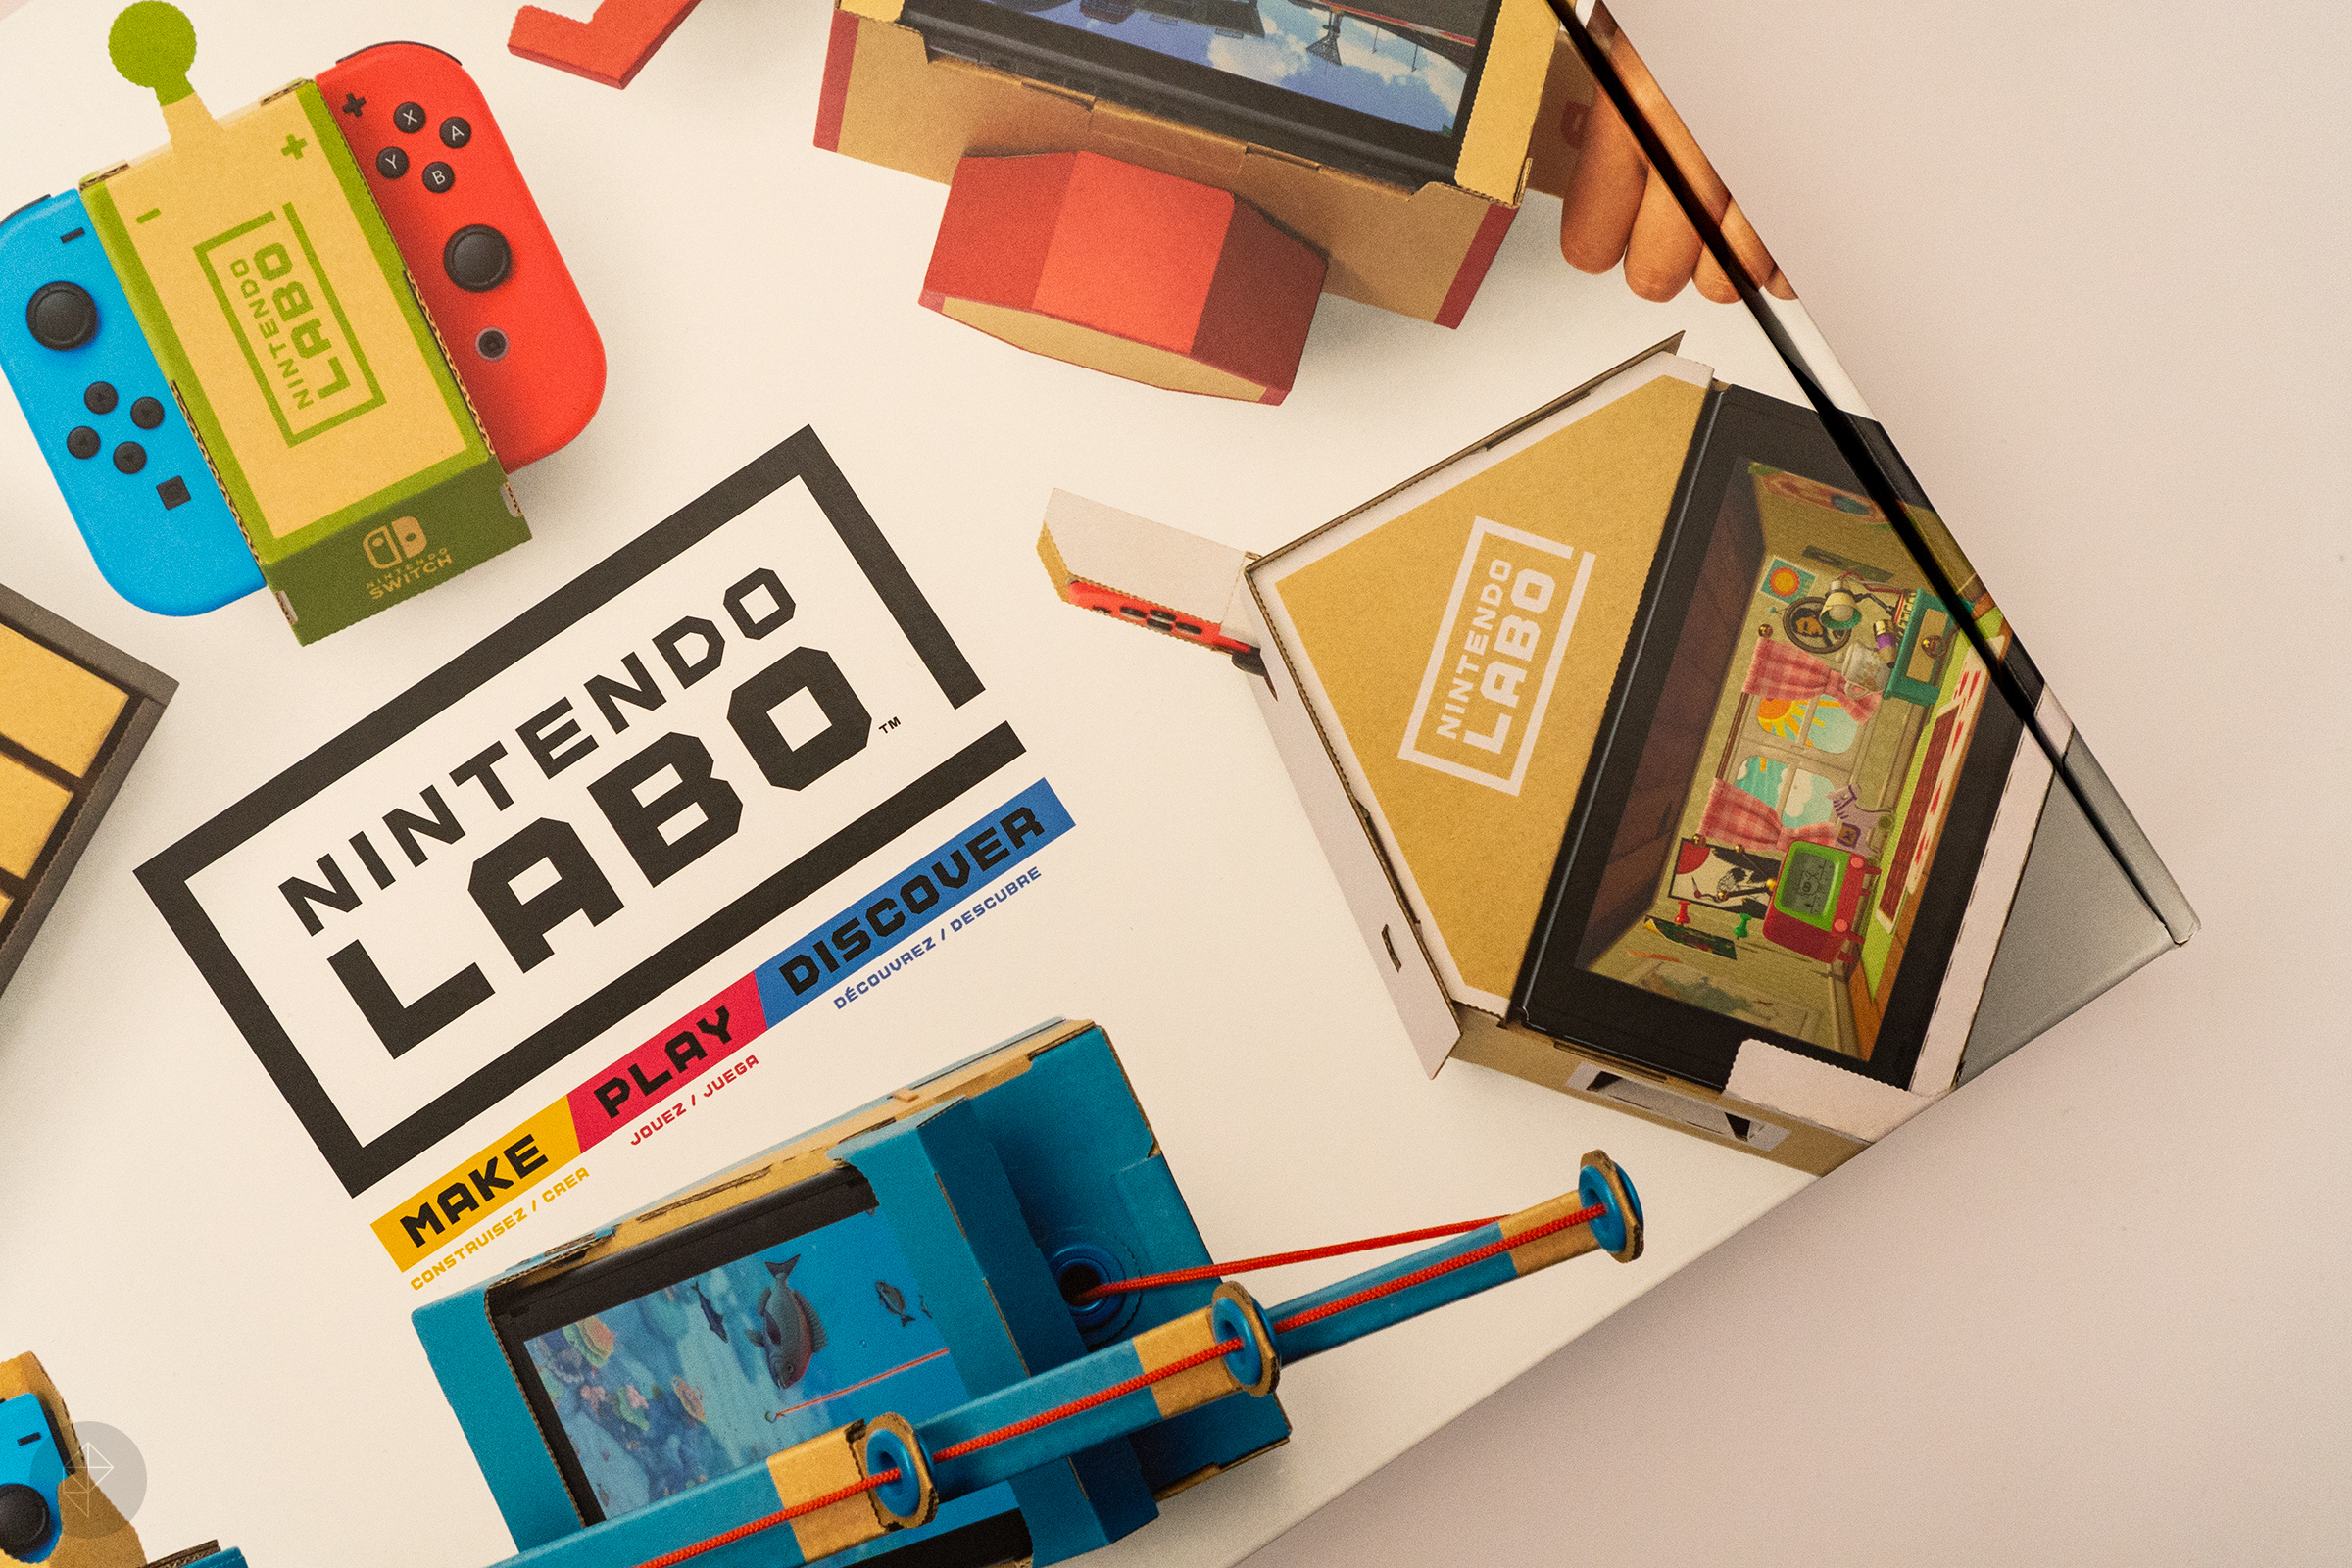 Nintendo Switch Labo bundles and first-party games are on sale at Walmart